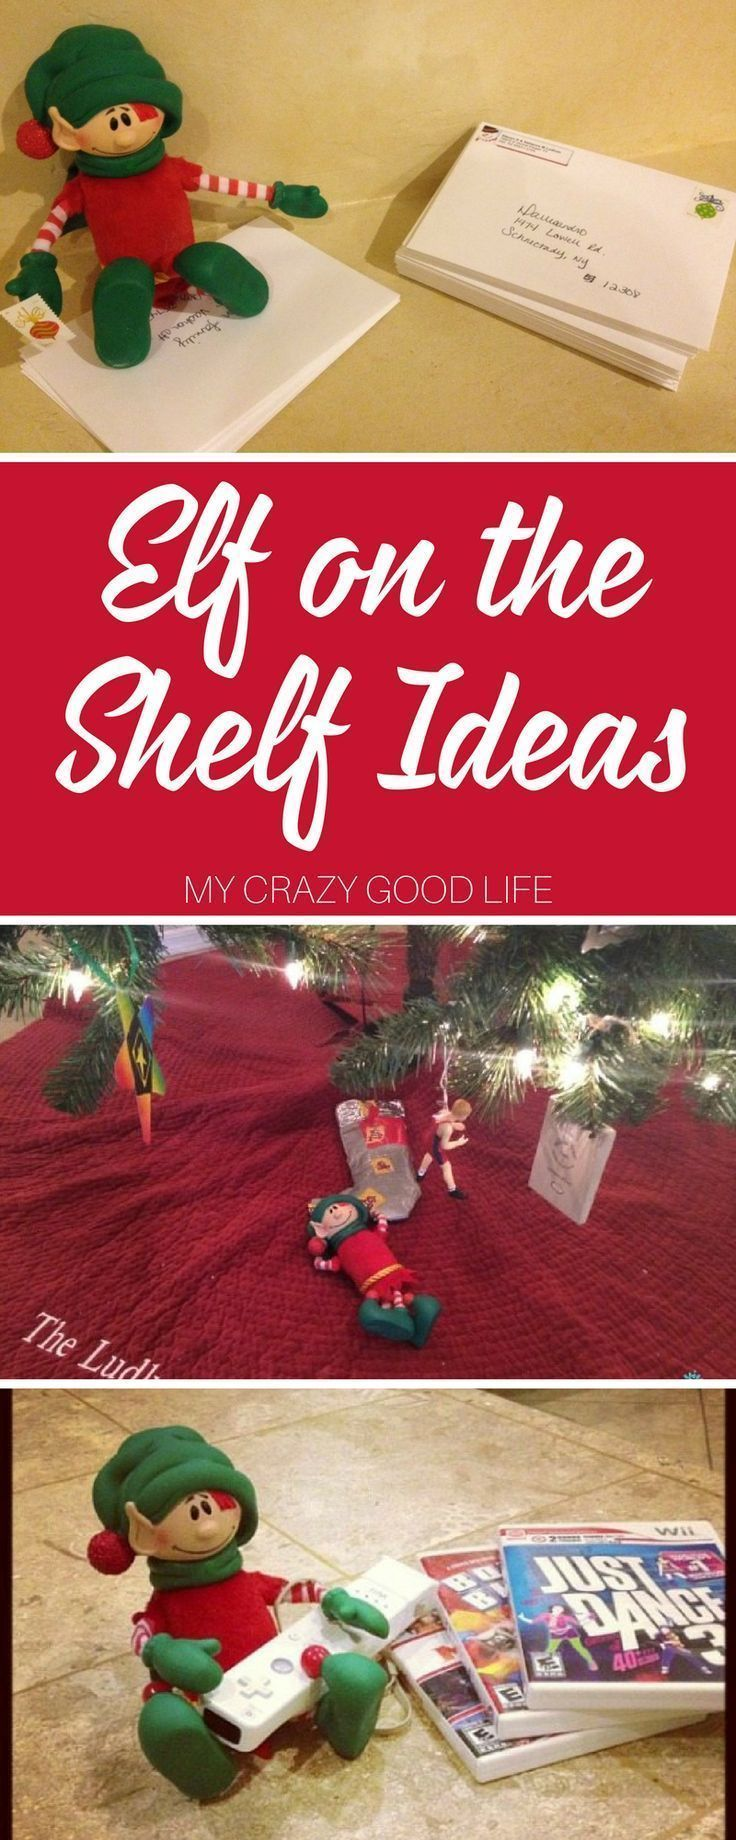 New Free of Charge #Elf #Ideas #Shelf Are you in need of some Elf On The Shelf ideas? We have a few… – Elf On The Self  Concepts   #Elf #Ideas #Shelf Are you in need of some Elf On The Shelf ideas? We have a few… : elf on the sh #Charge #Concepts #Elf #Free #Ideas #Shelf #elfontheshelfideasfortoddlers